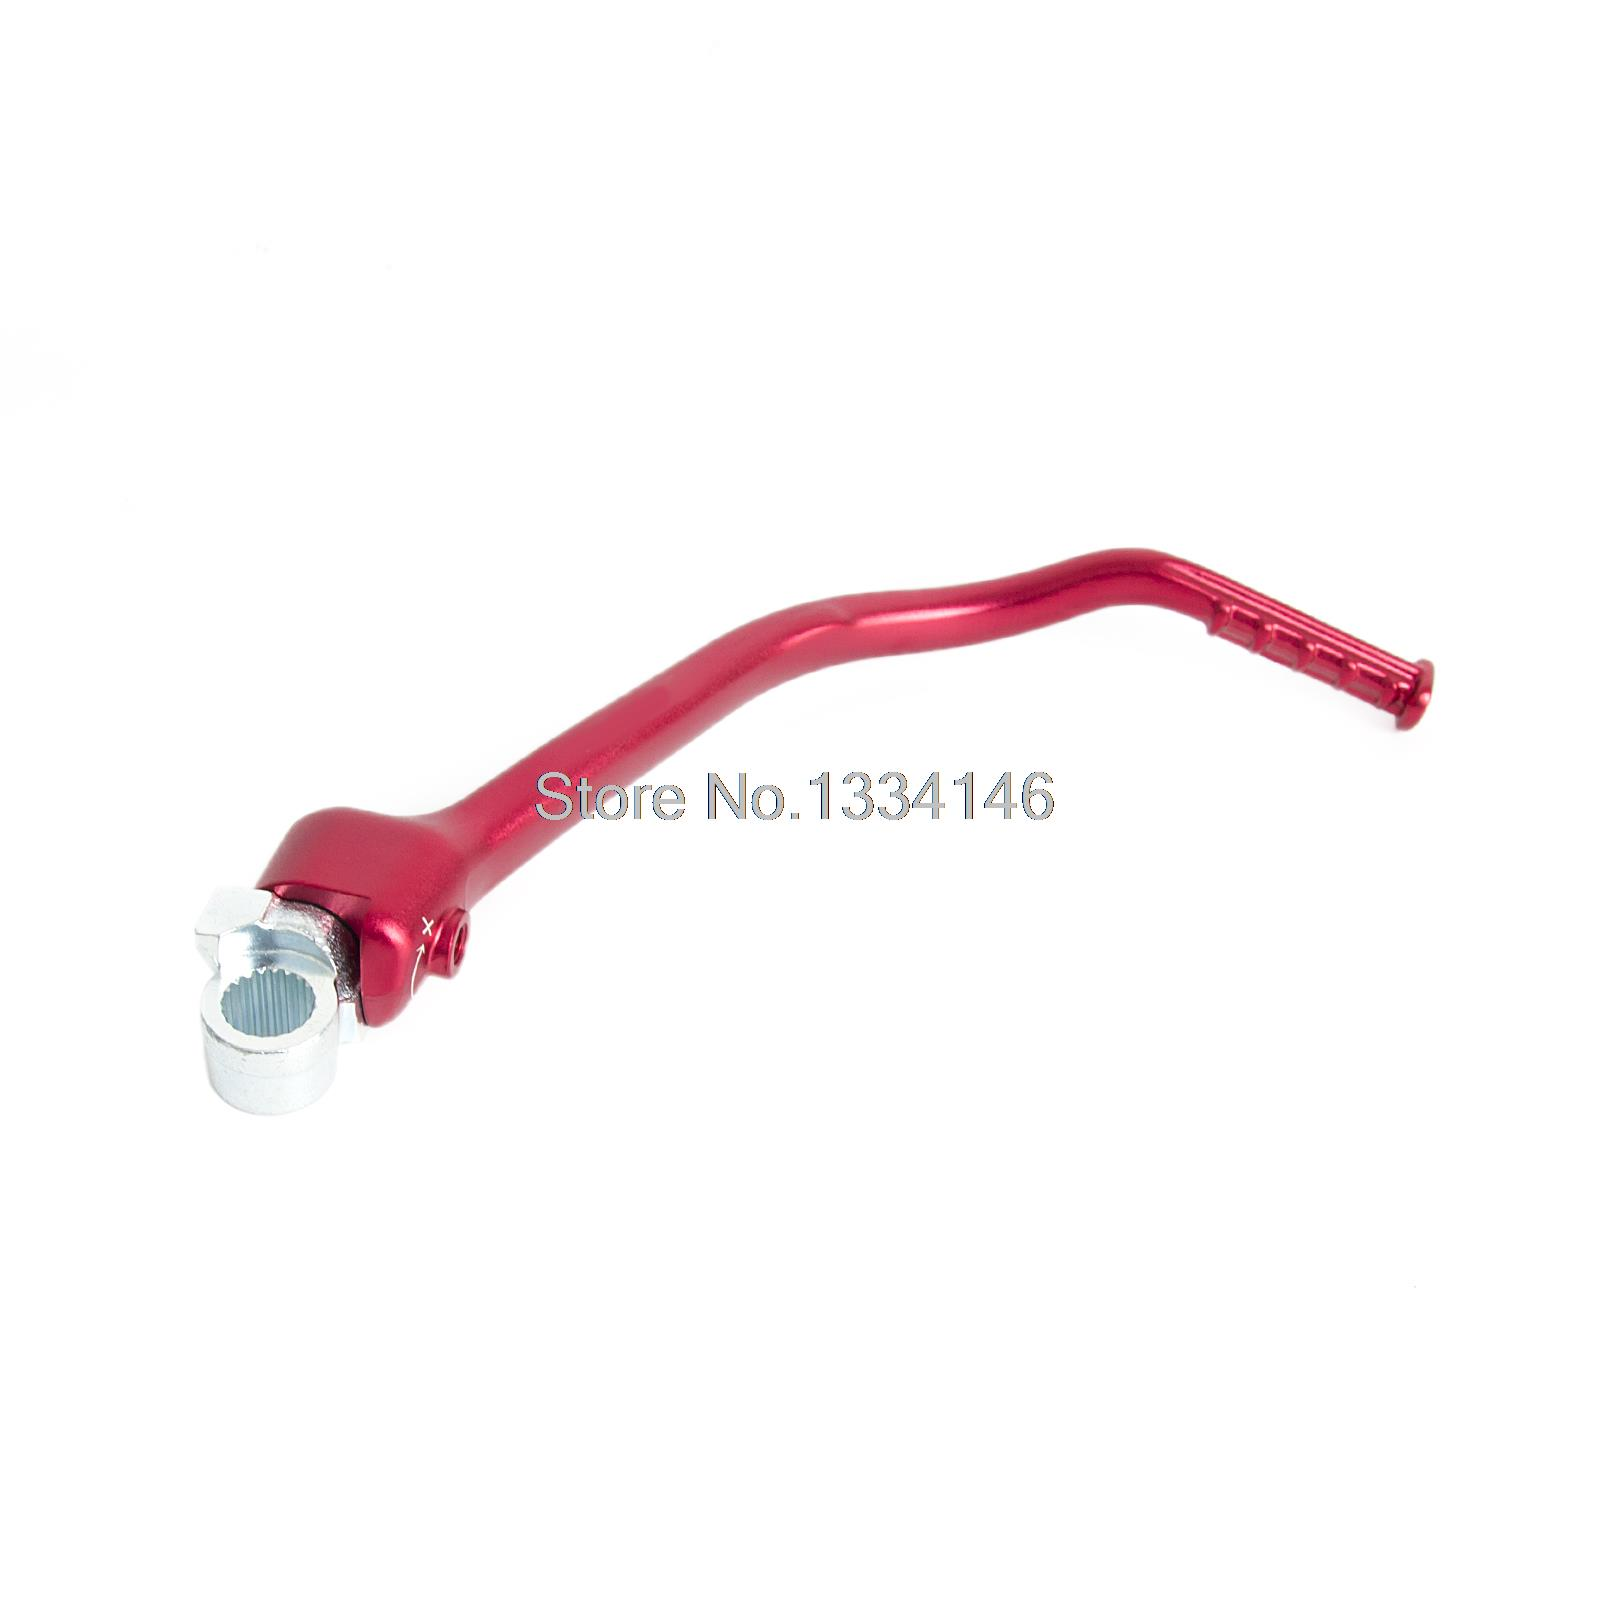 ФОТО Anodized Red Forged Kick Start Lever for Honda CRF250R 2012-2016 13 14 15